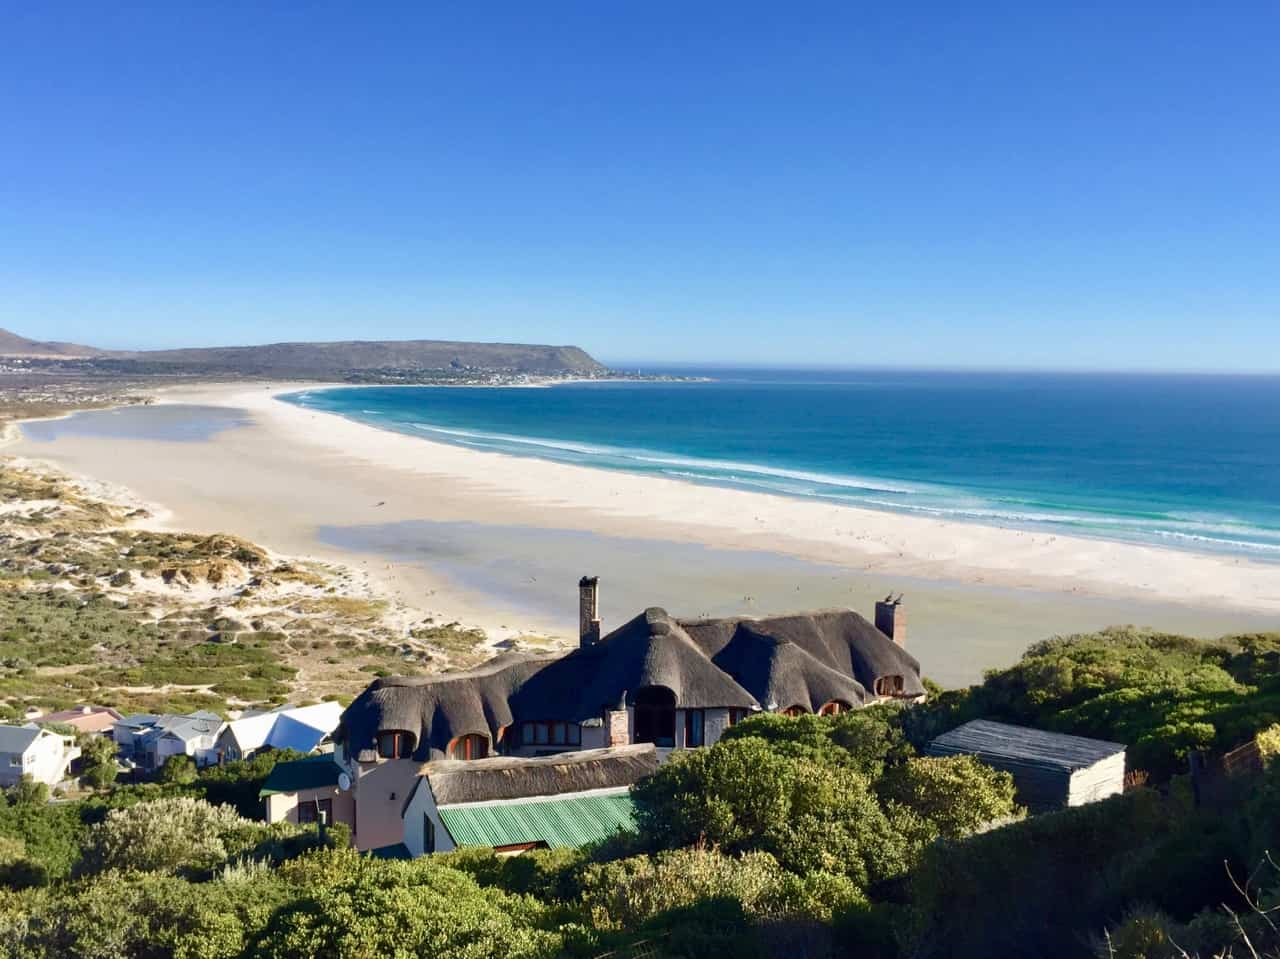 noordhoek-beach-photo